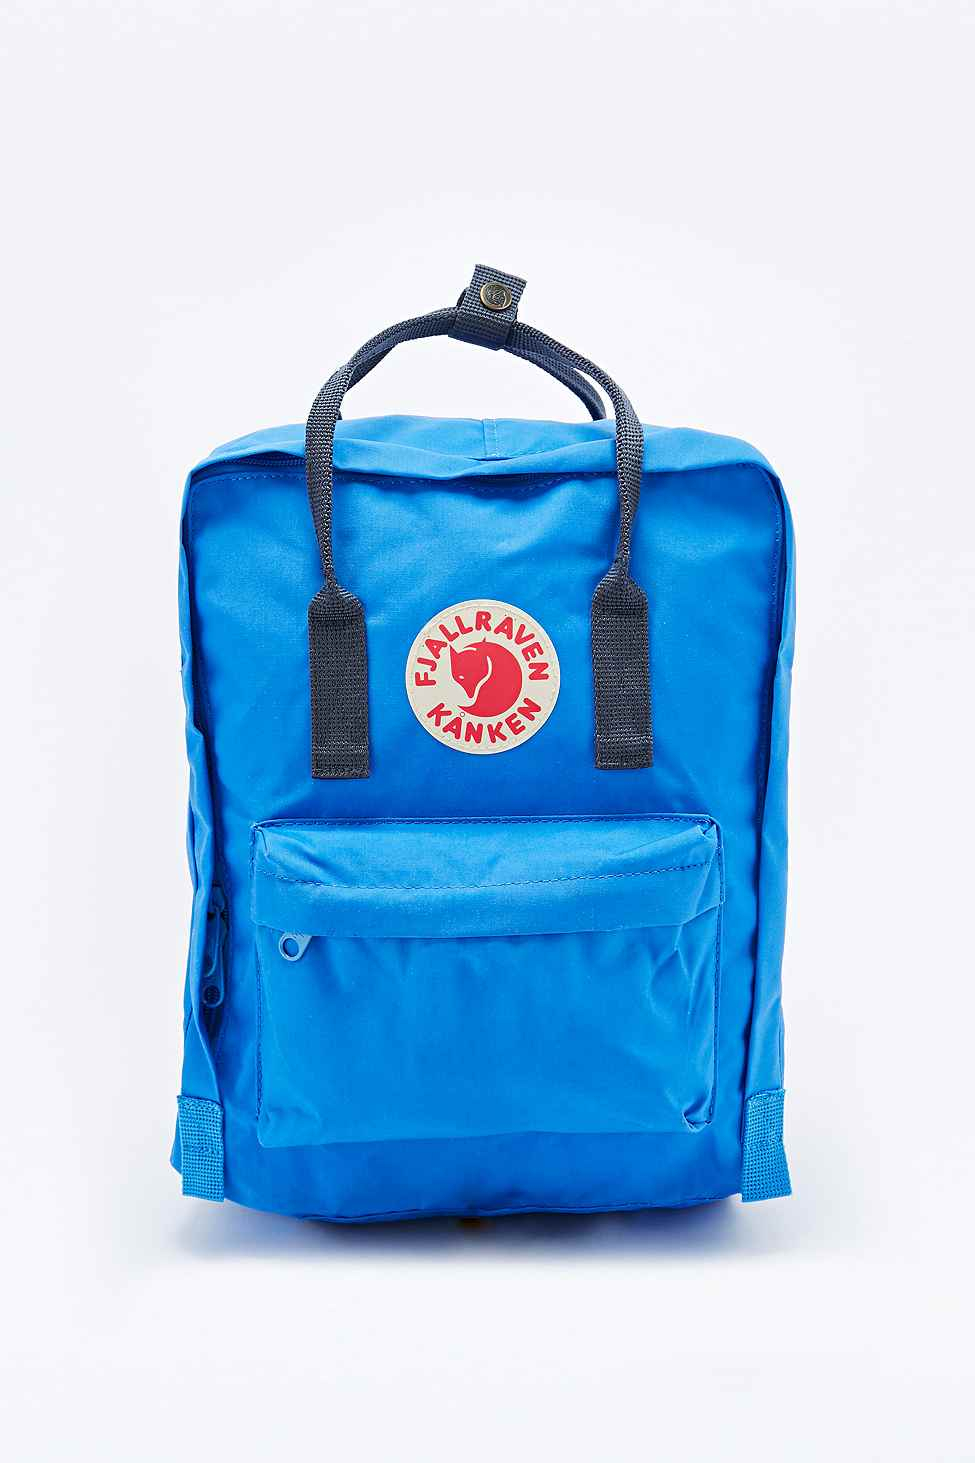 Snap Fjallraven Kanken Classic Backpack In Blue And Navy Royal Pinstripe Pattern